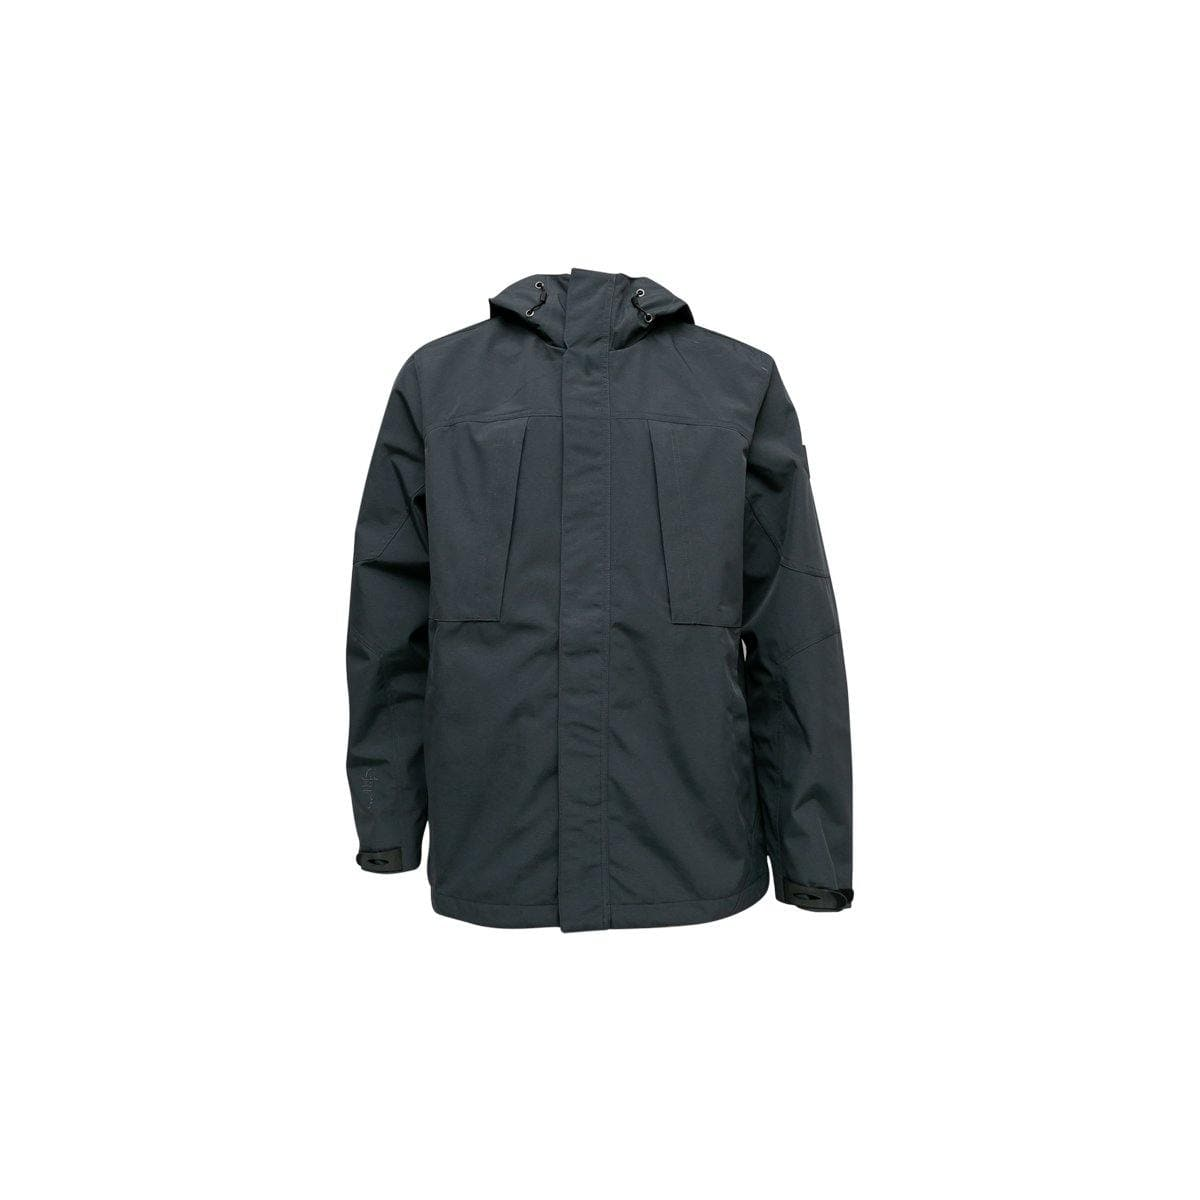 Reel Life Men's Submariner Jacket